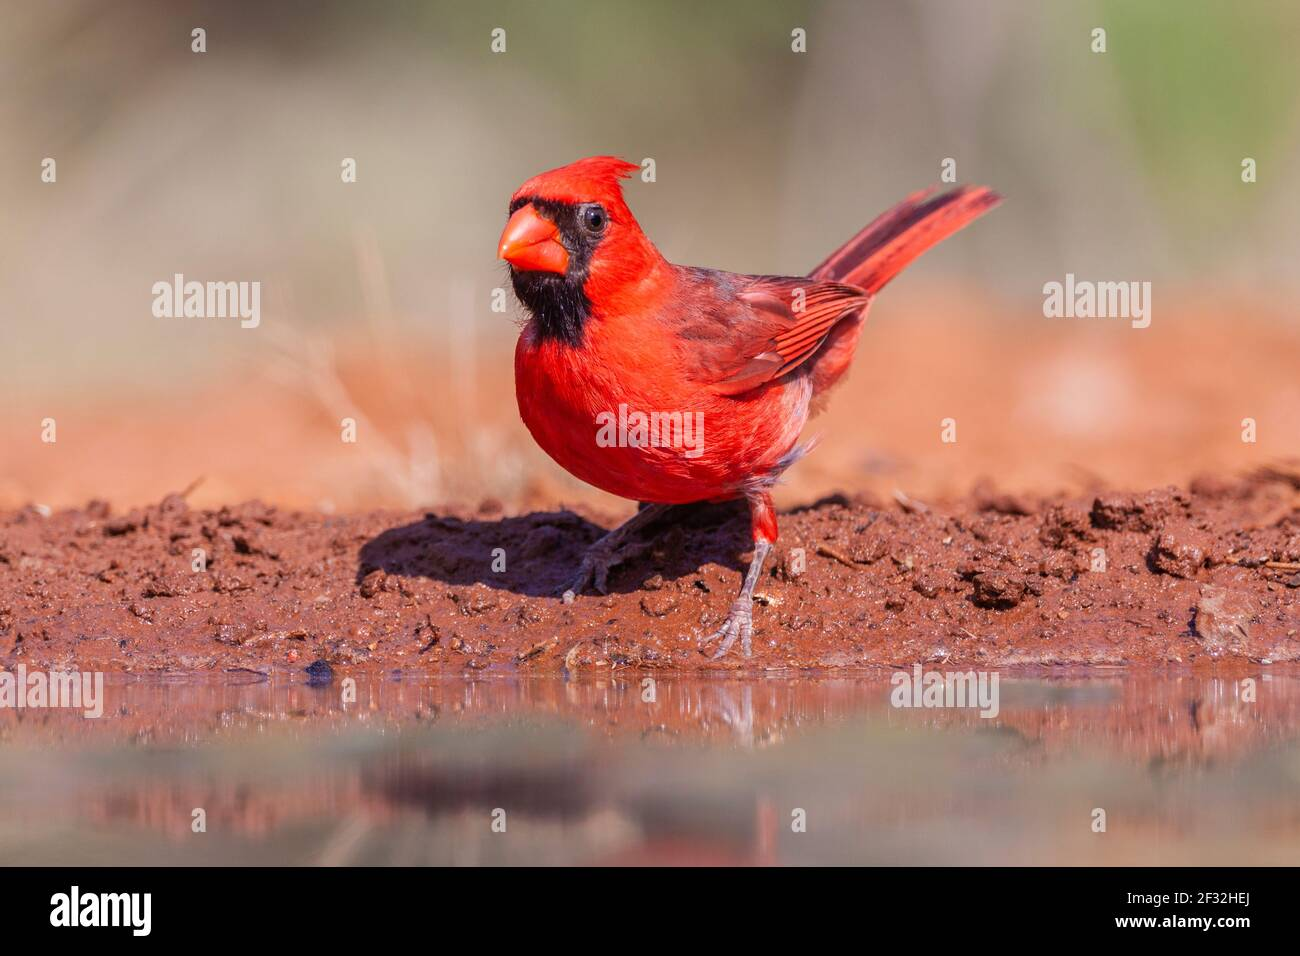 Northern Cardinal, Cardinalis cardinalis, looking for water and relief from summer heat, on a ranch in South Texas. Stock Photo